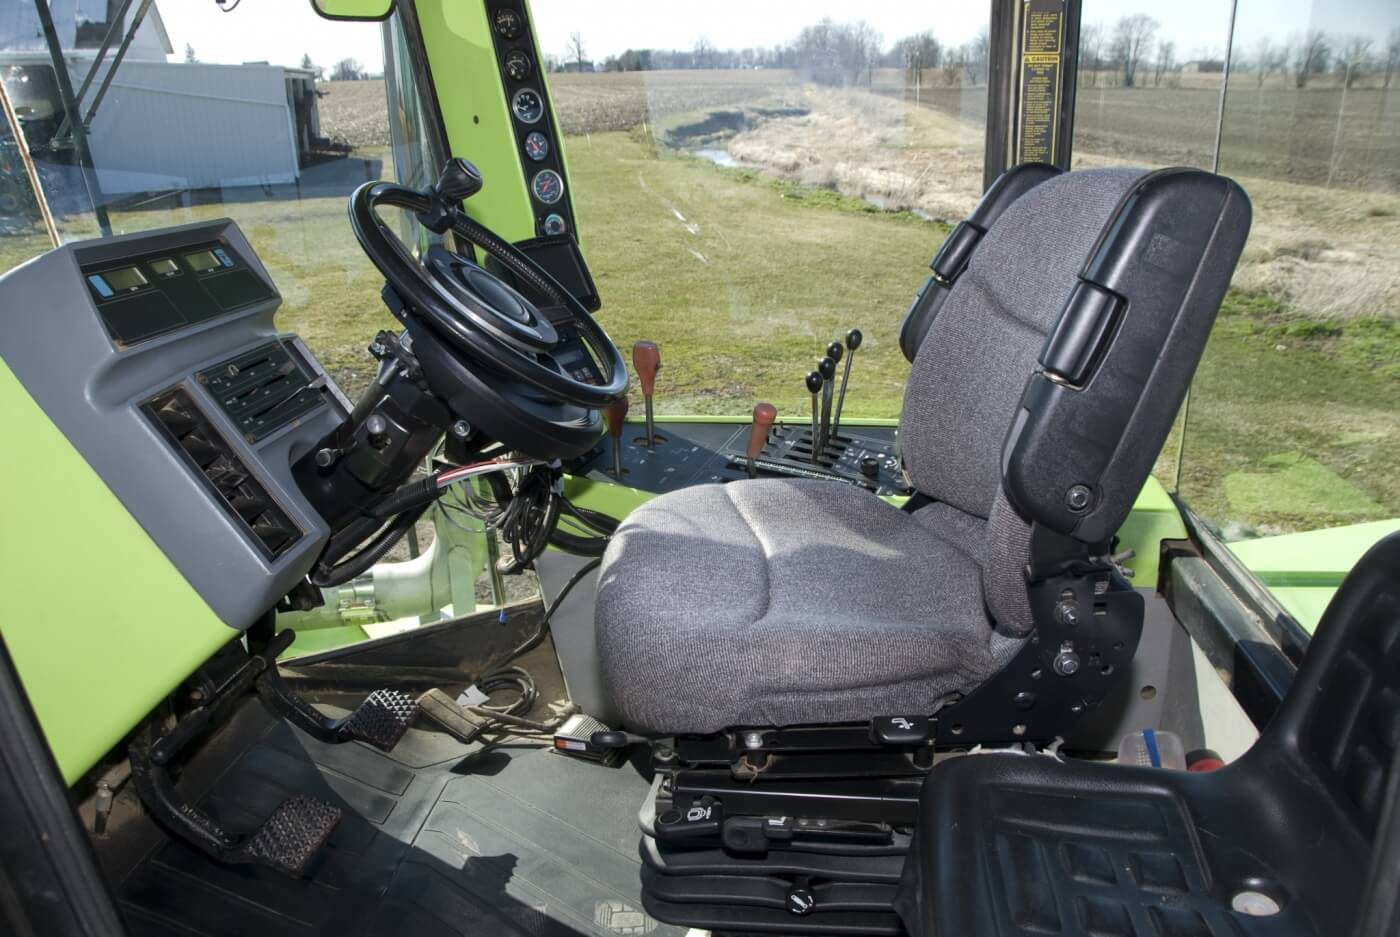 A nice place to work. Plenty of visibility, air conditioning, a suspended seat with armrests, a nice sound system and plenty of controls to keep you occupied. It even has autosteer tied in with a GPS and automation for planter and fertilizer application. The hour meter shows 1380 hours.